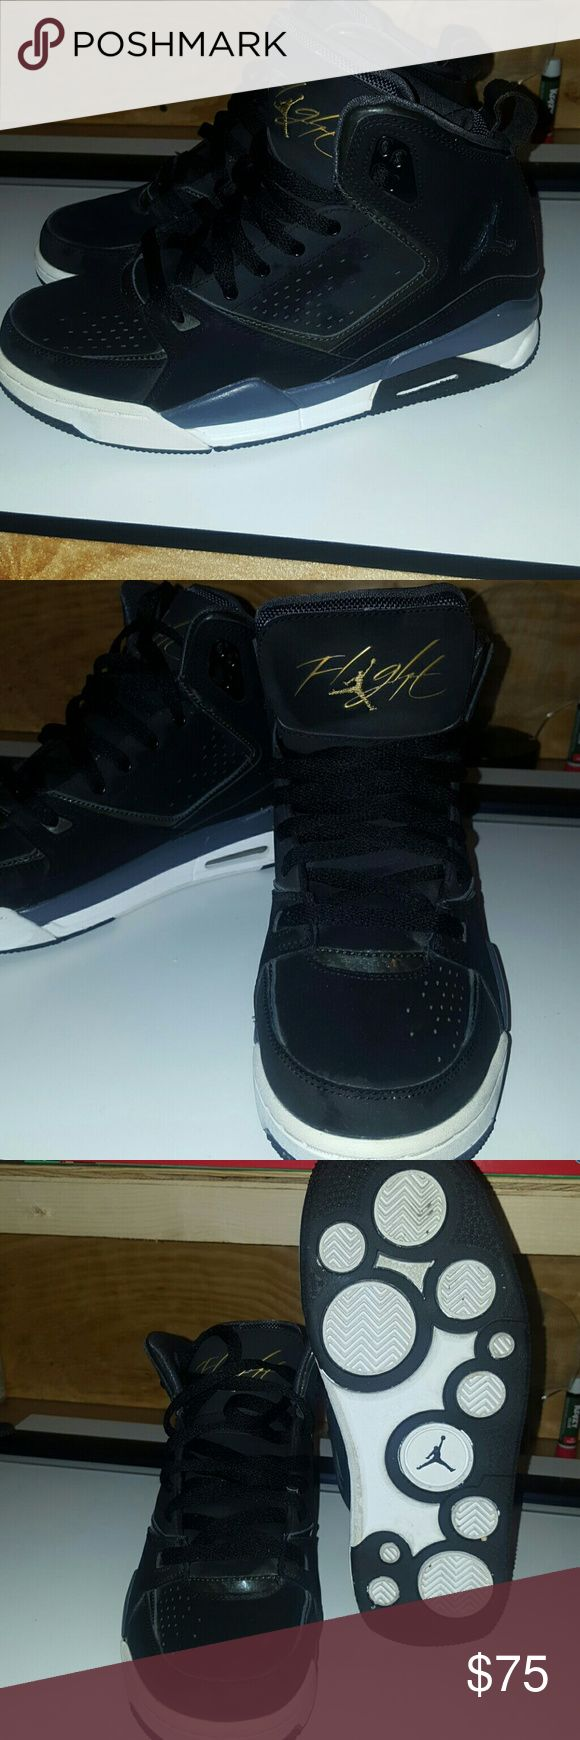 Women's Jordan flight shoes Black and gold Jordan flight Taken care of Condition 9/10 Price as shown or best offer , comment Jordan Shoes Sneakers